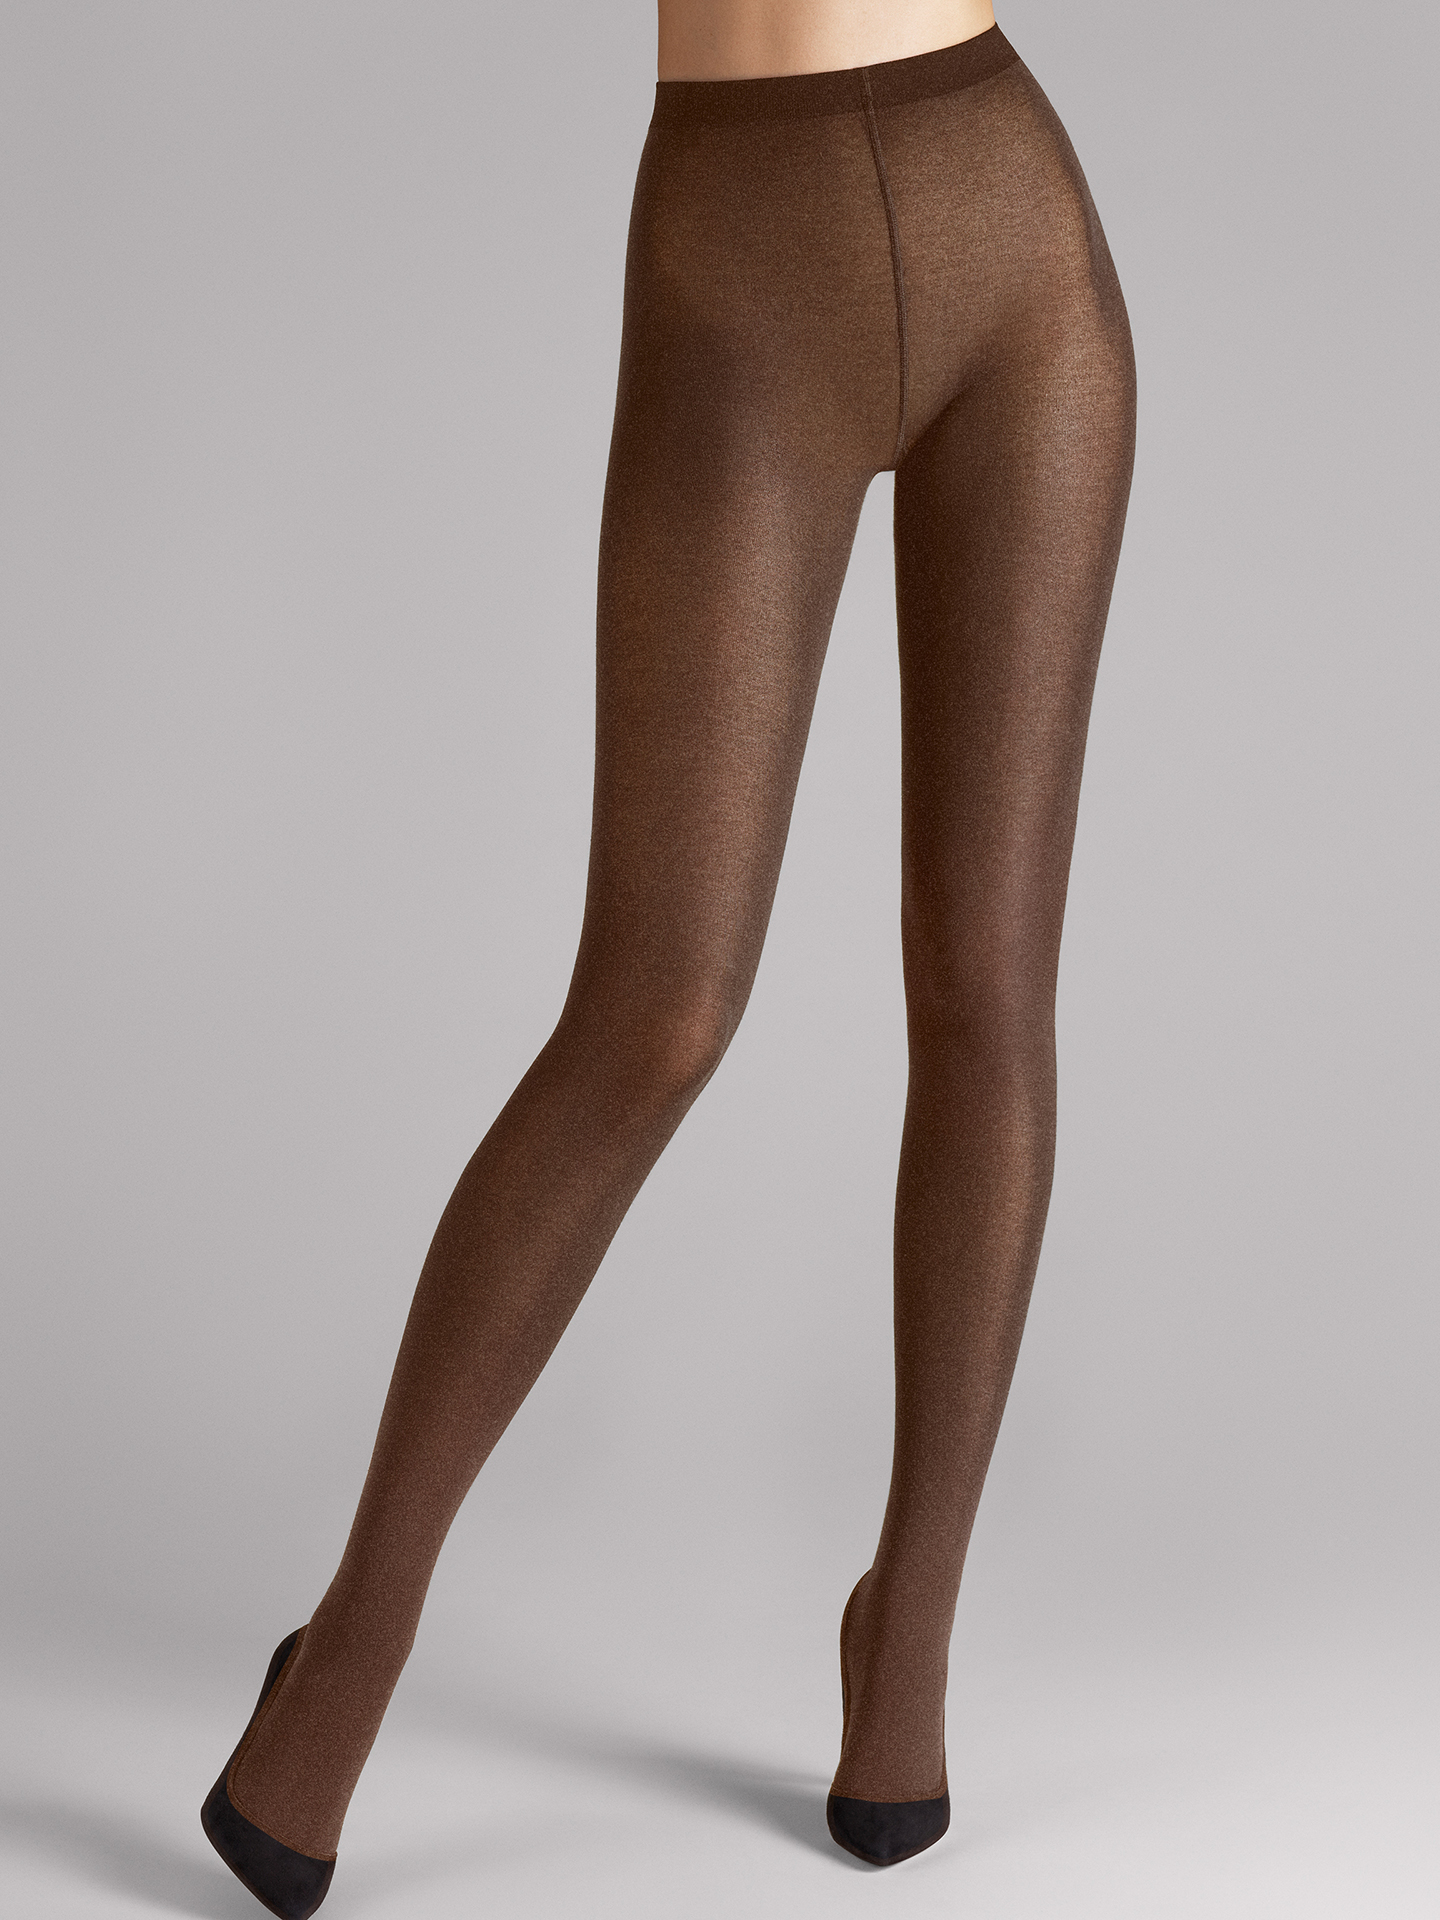 Wolford Apparel & Accessories > Clothing > Collant Cotton Velvet - 9287 - S